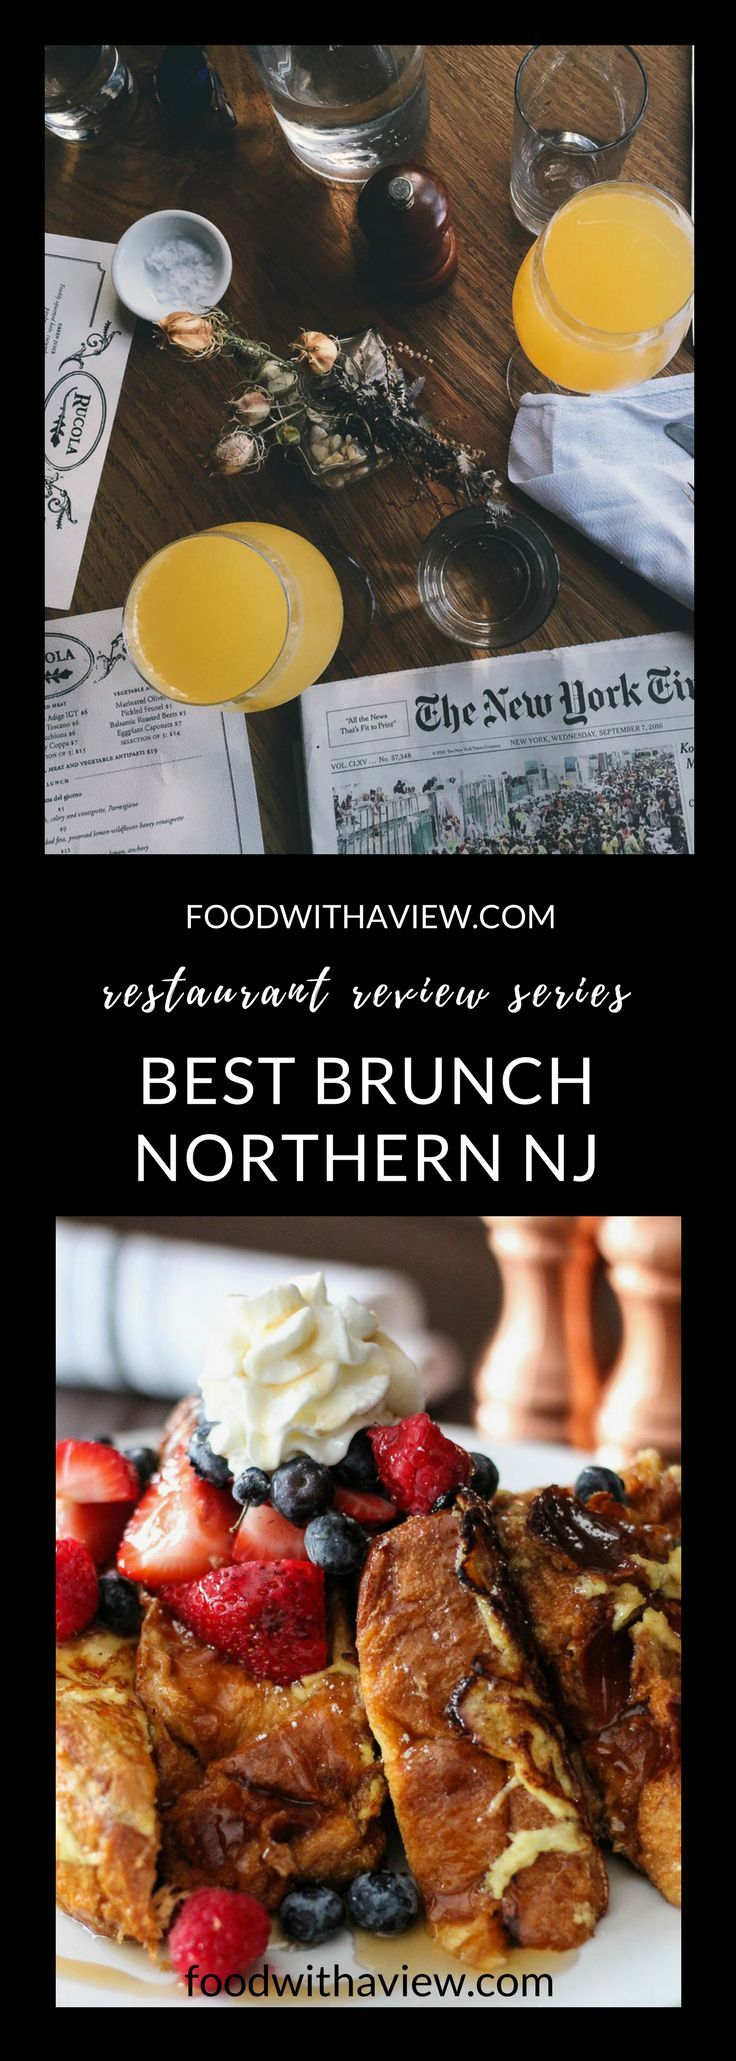 Best Food Restaurants Near Northern Nj